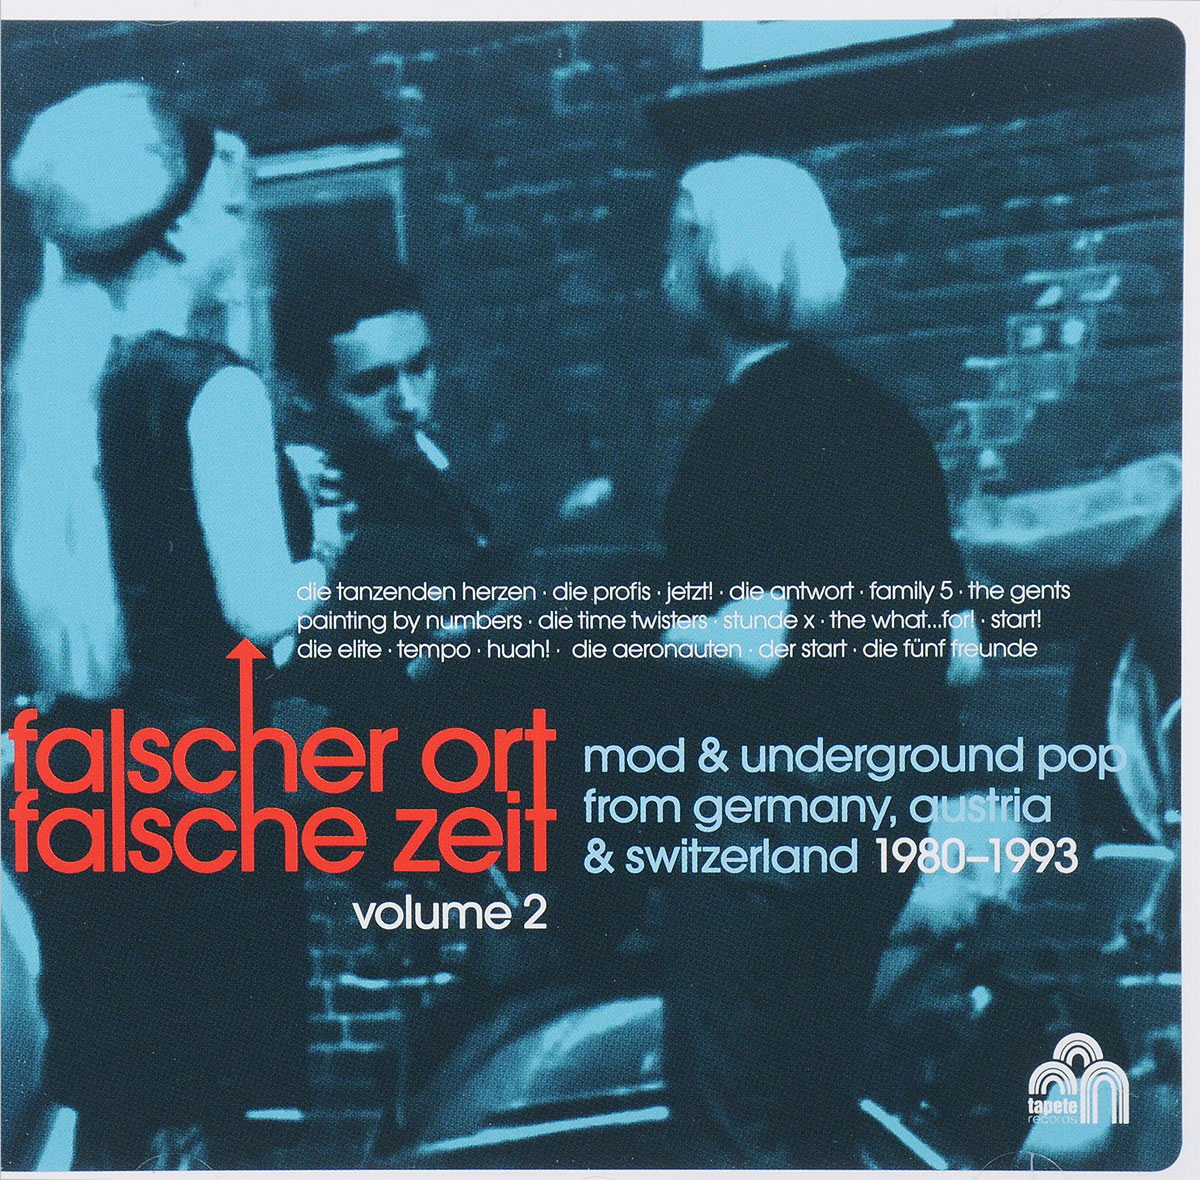 Falscher Ort Falsche Zeit. Volume 2. Mod & Underground Pop From Germany, Austia & Switzerland 1980-1993